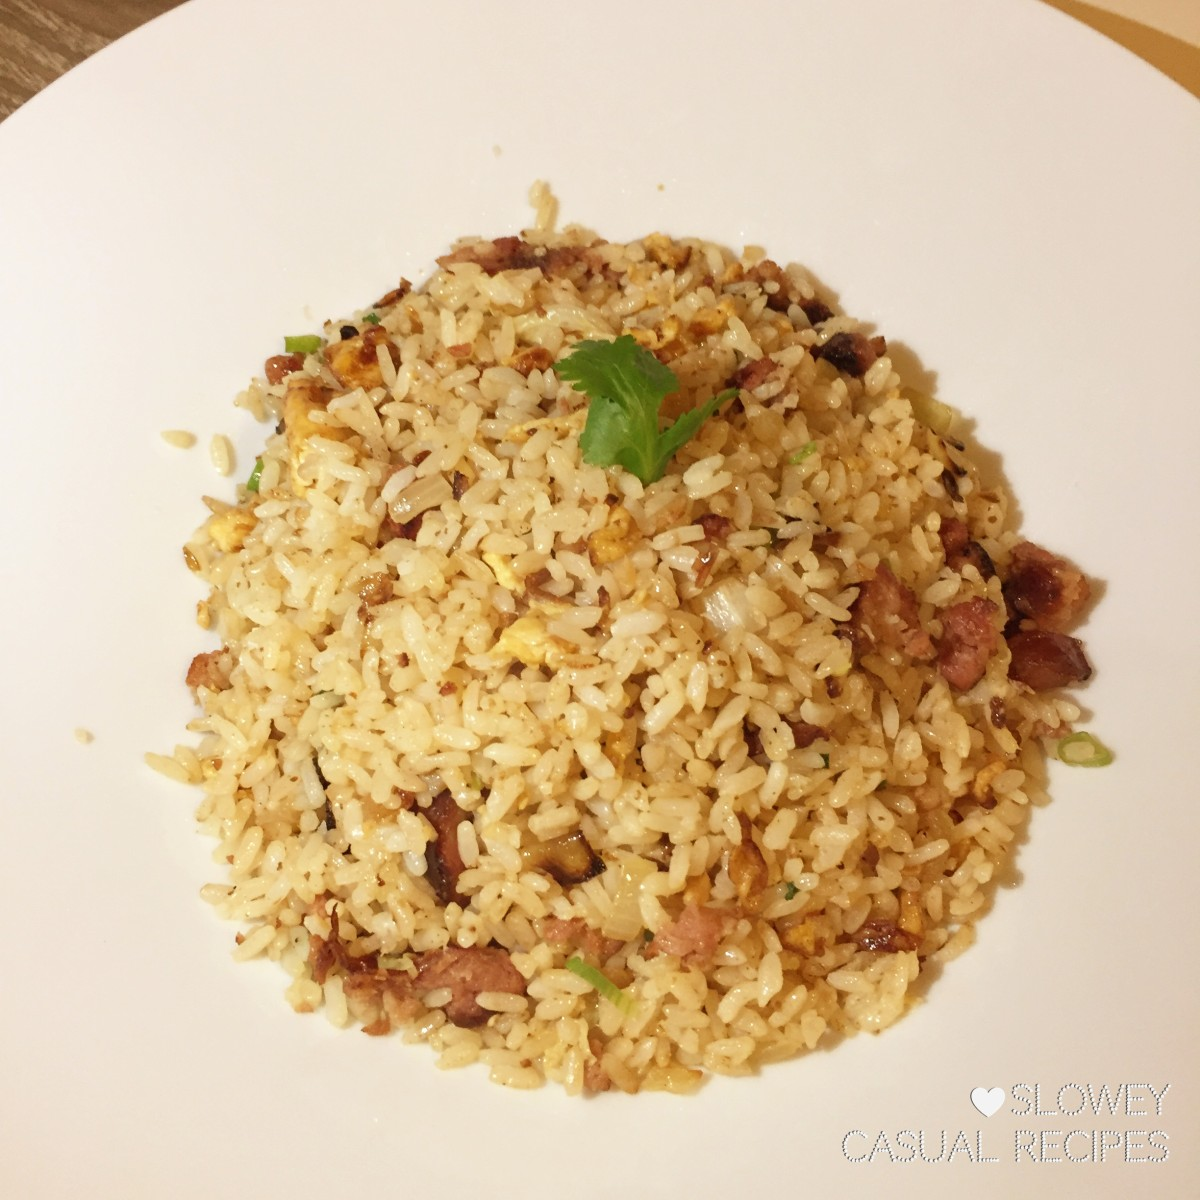 Taiwanese Sausage Fried Rice 台式香腸炒飯